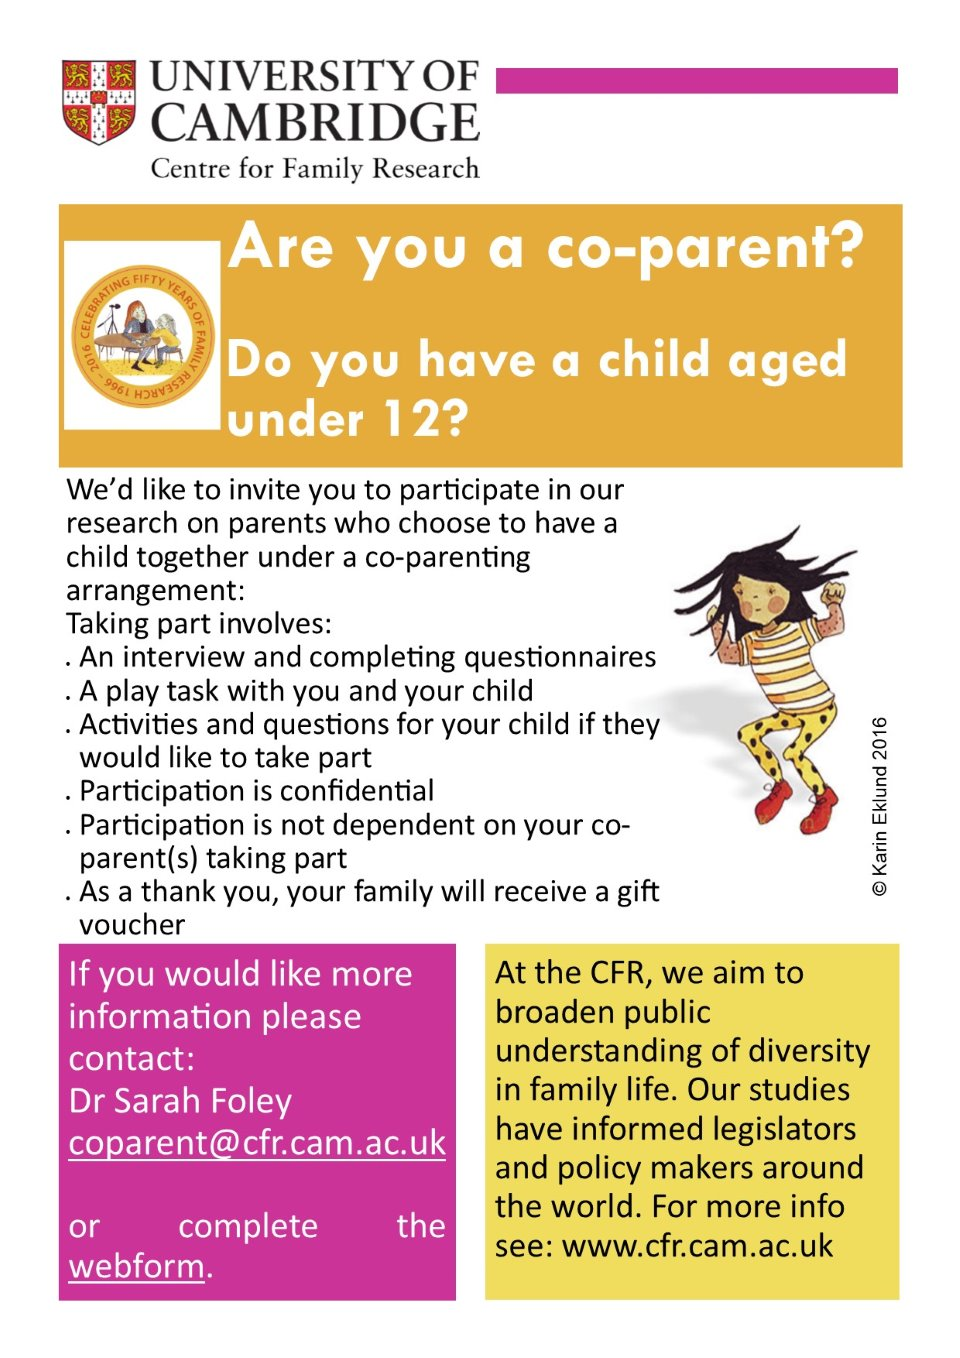 coparent poster for Cambridge university